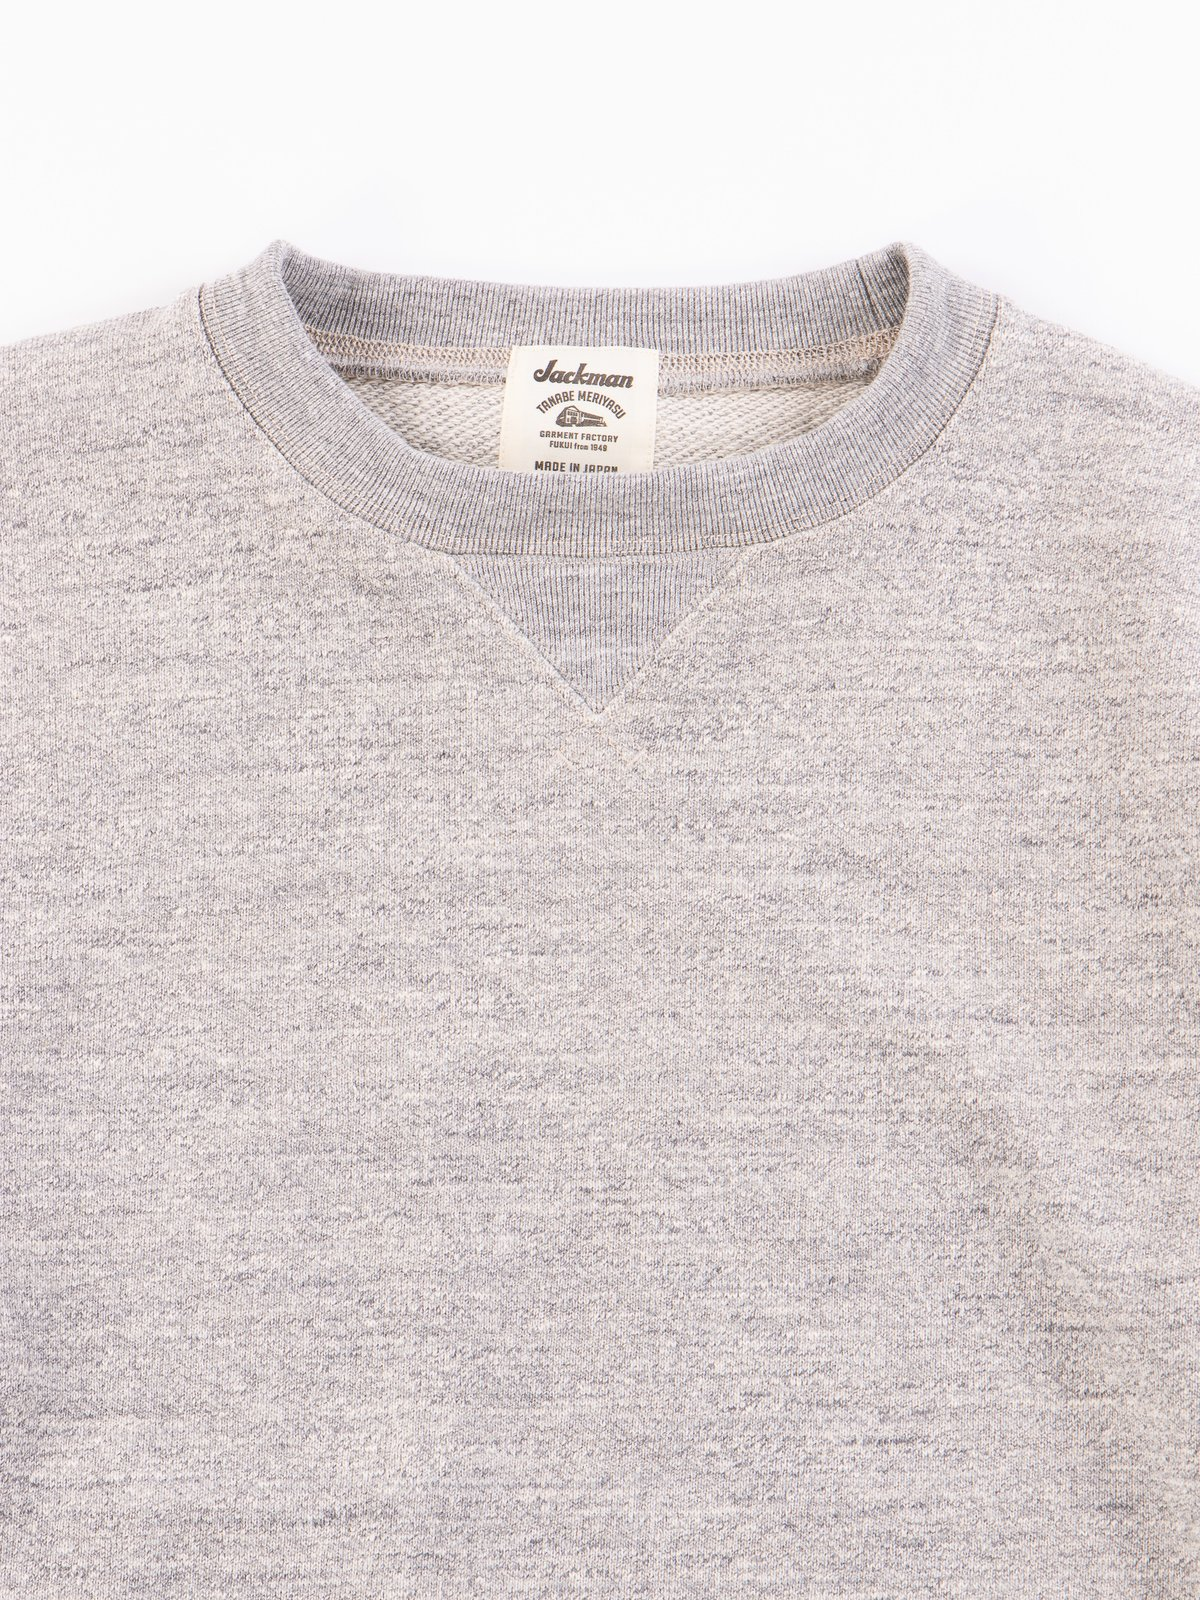 Heather Grey GG Crewneck Sweat - Image 3